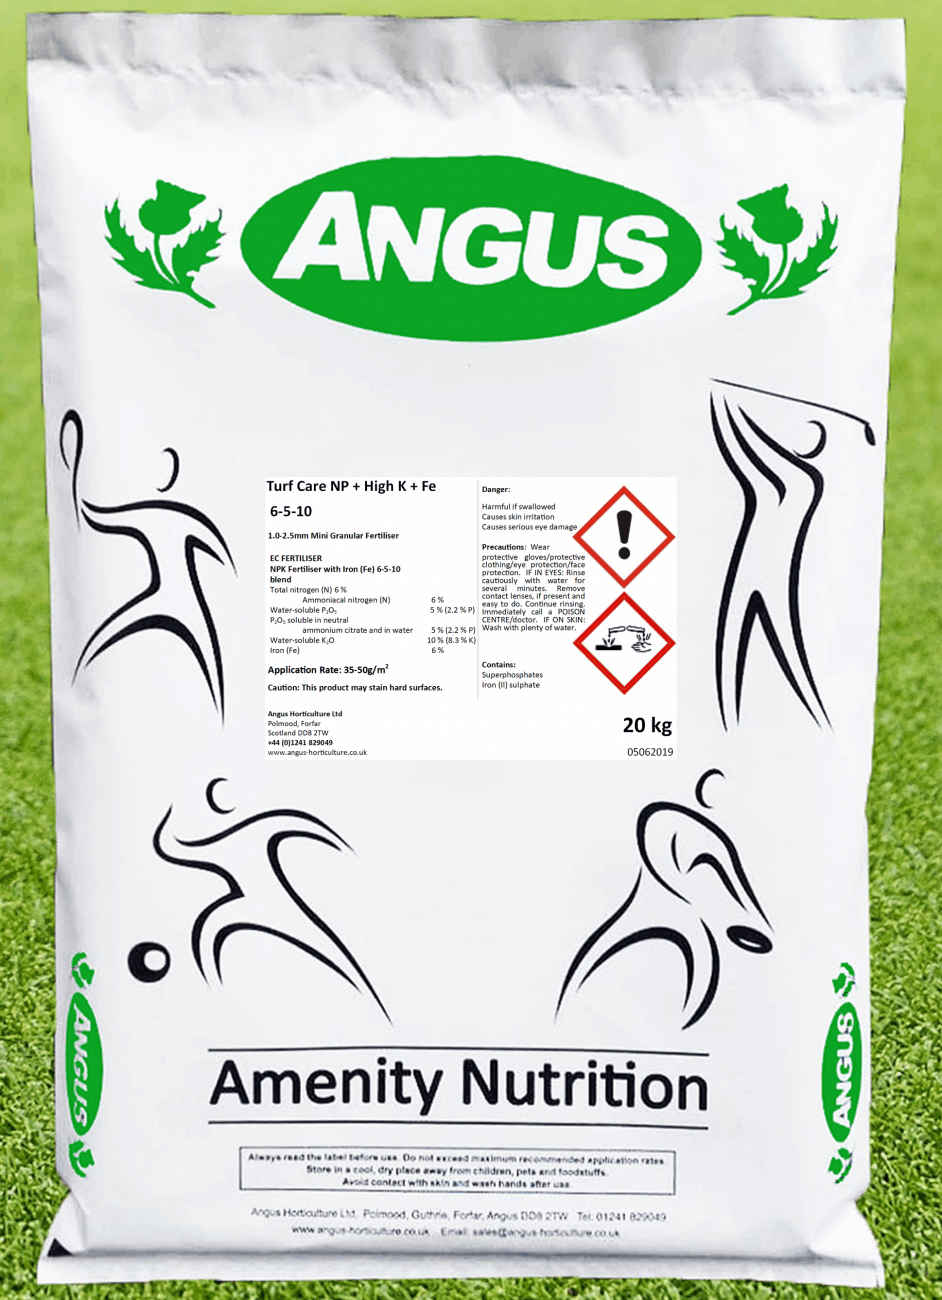 Product image of Turf Care N, P & High K & Fe